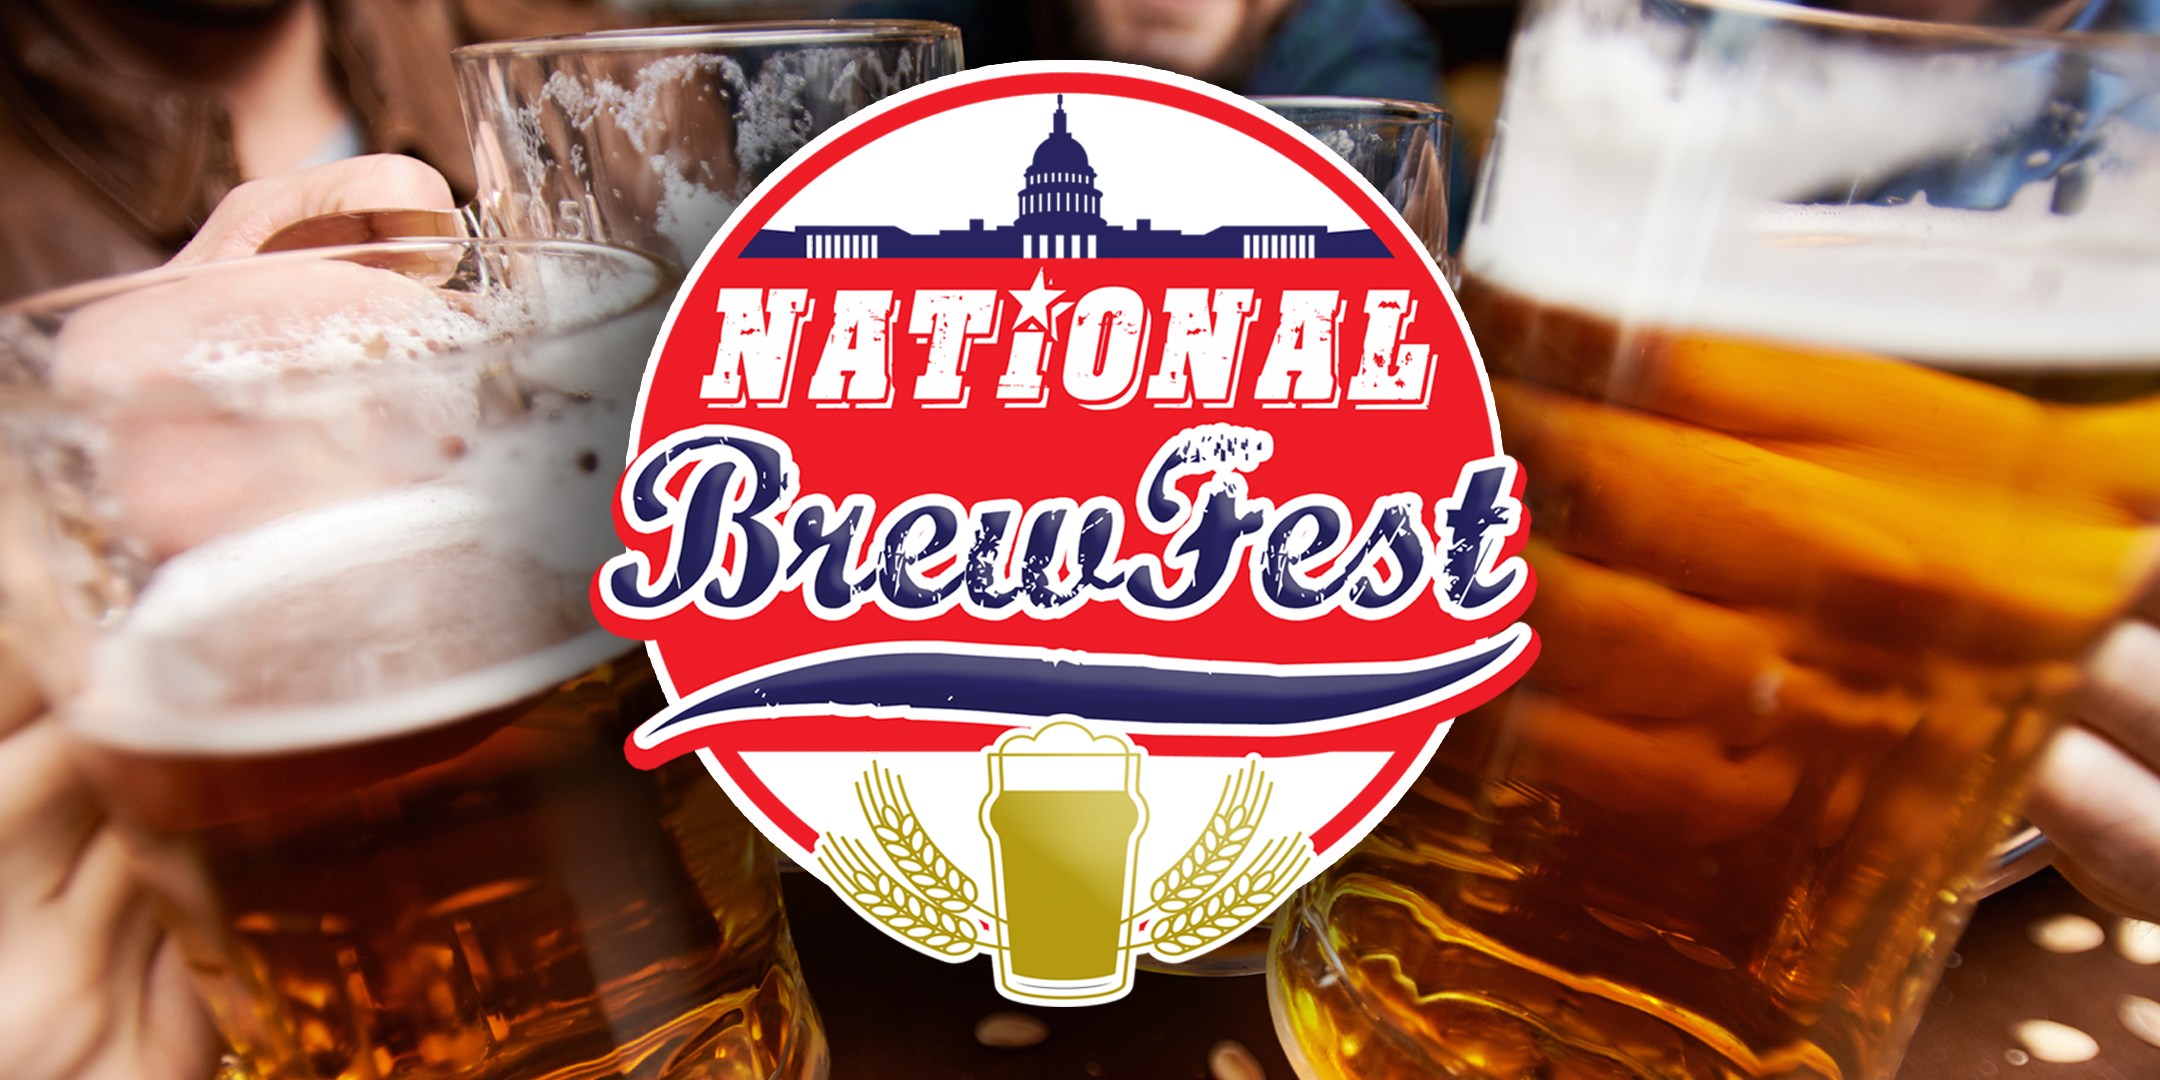 NATIONAL BREW FEST